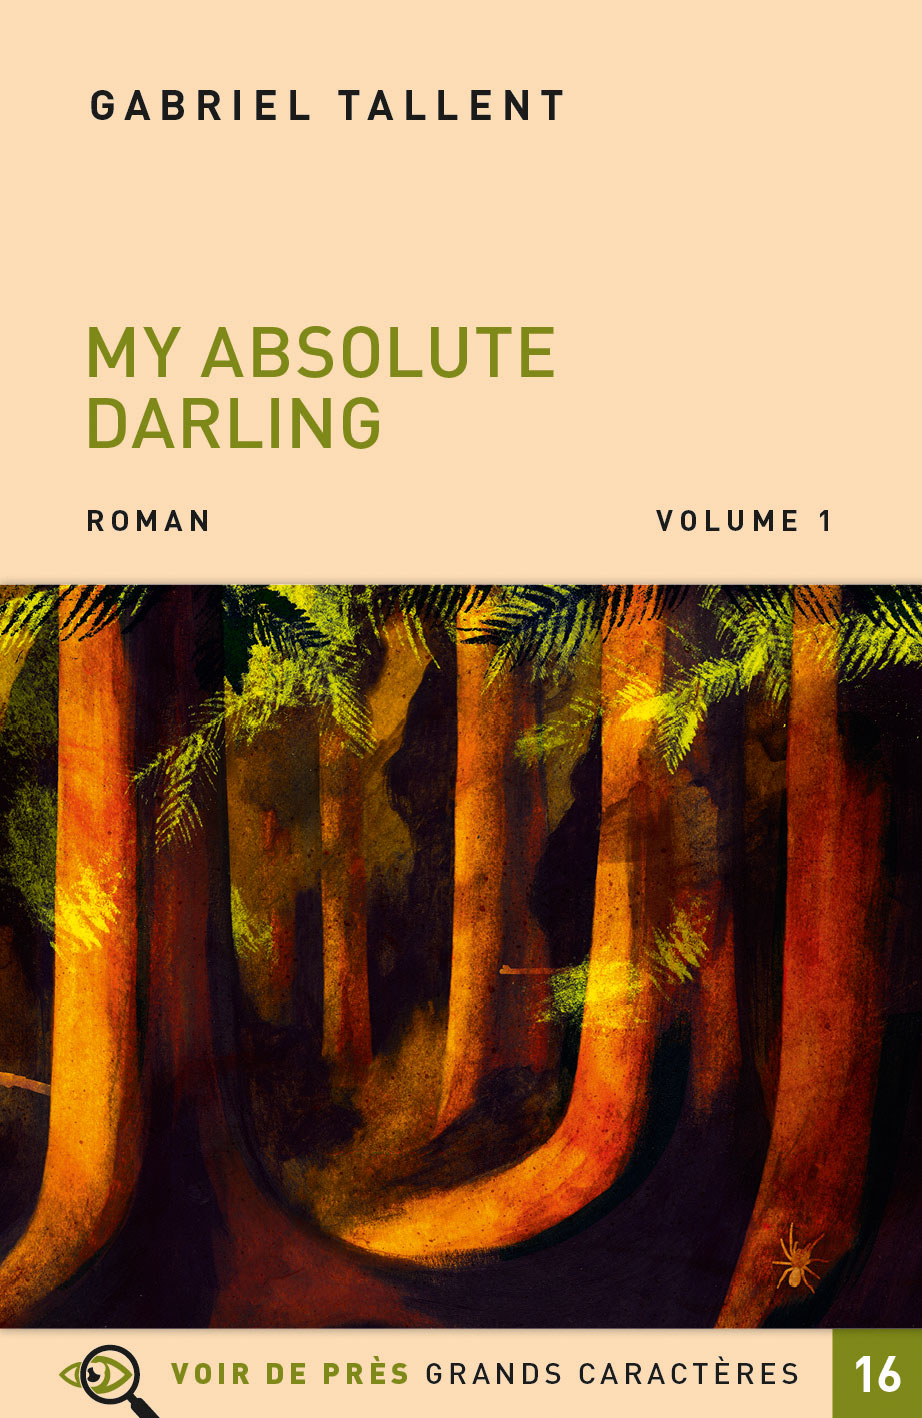 Couverture de l'ouvrage My Absolute Darling